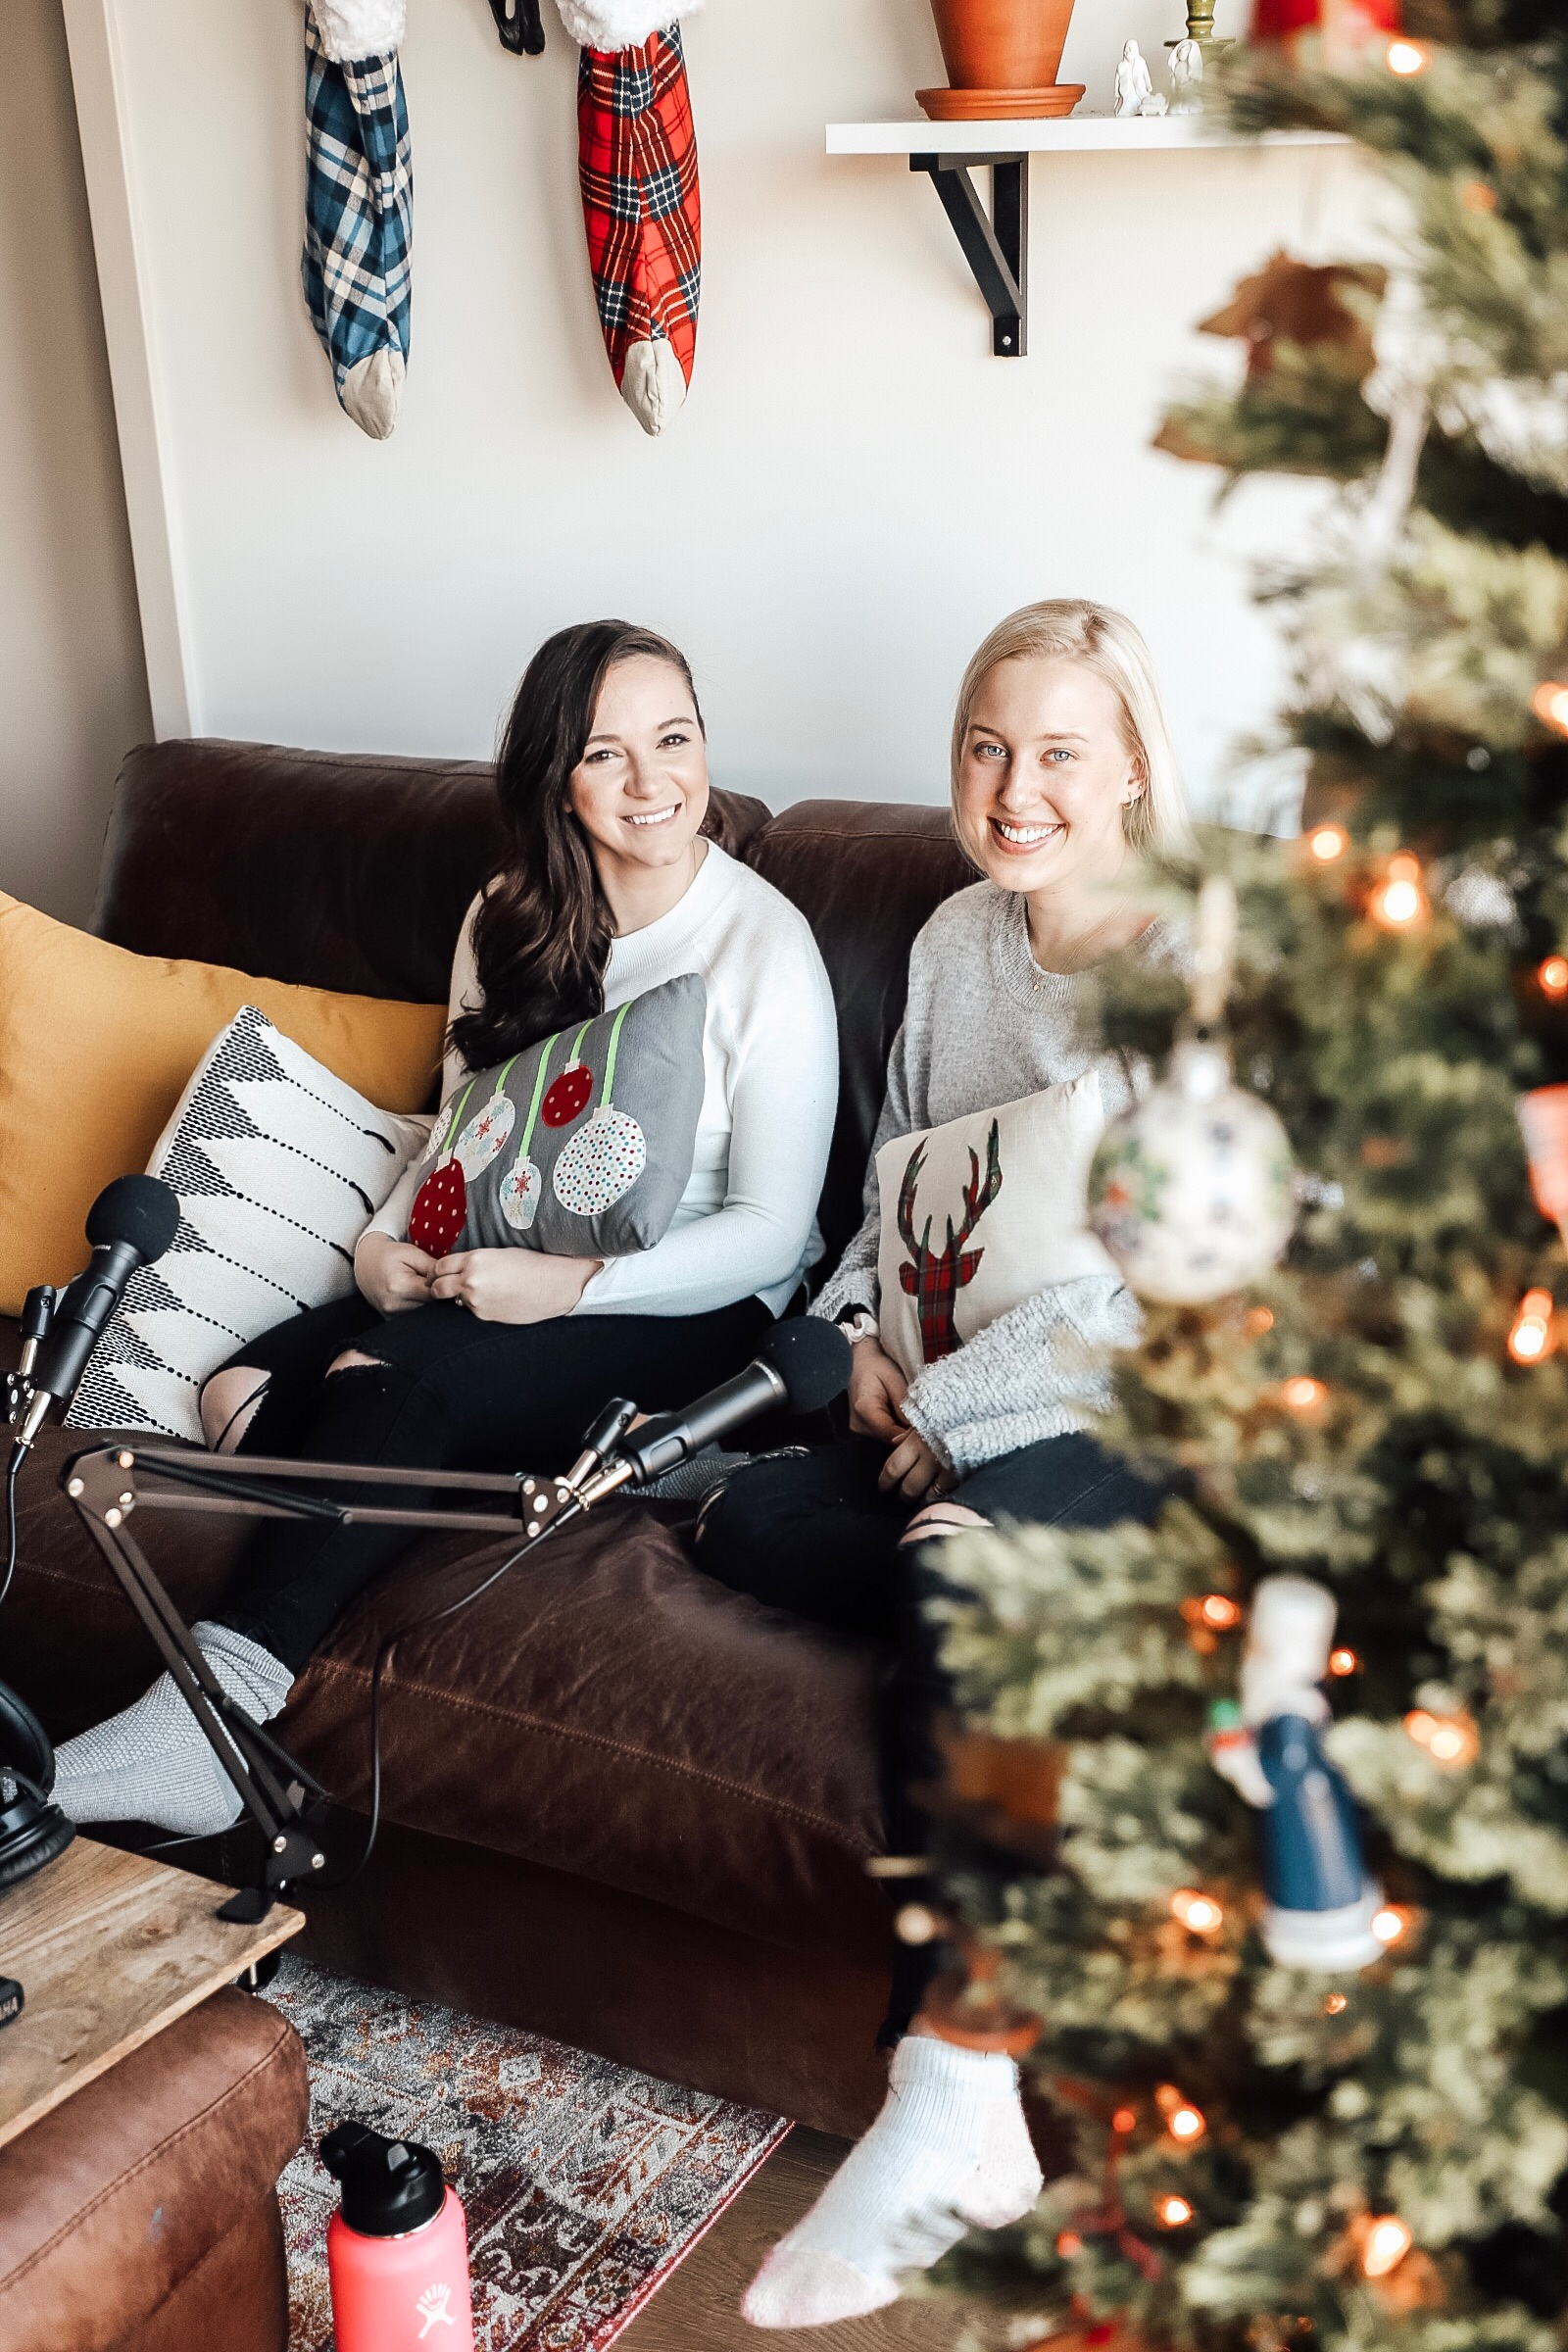 An Intential Episode Break // Christmas Week 2019 - Hi Loves! You may have noticed that we didn't post an episode today Maybe you didn't, because maybe you're doing the same we are. We decided to take an intentional episode break this week, Christmas 2019. Beck is on the trip of a lifetime with her husband and meeting up with family, and Meg is cozy in Pennsylvania, spending time with her family (and probably frantically wrapping some last minute gifts).We really wanted to practice what we preach here - which is why we're intentionally not uploading a post today, December 24th. You can expect an important SOLO episode to go live next Monday, December 31st. In the meantime, check out our 33 (OMG! this is crazy!) prior podcasts available on Apple and Stitcher.Let us know what you're up to - whether you're taking a break for the holidays, or your break and celebration has already happened or is still to come. We'd love to chat in our Facebook group and on Instagram.Our Facebook group is a safe space for anyone who joins, so don't forget to check us out there. Just search *SUPER EXLUSIVE* Detox & Chill Podcast Group. As always, don't forget to follow along with us on Instagram (@detoxandchillpodcast) and join our Facebook group. We love you!HAPPY HOLIDAYS - we love you so much and are beyond grateful <3,Meg & Beck